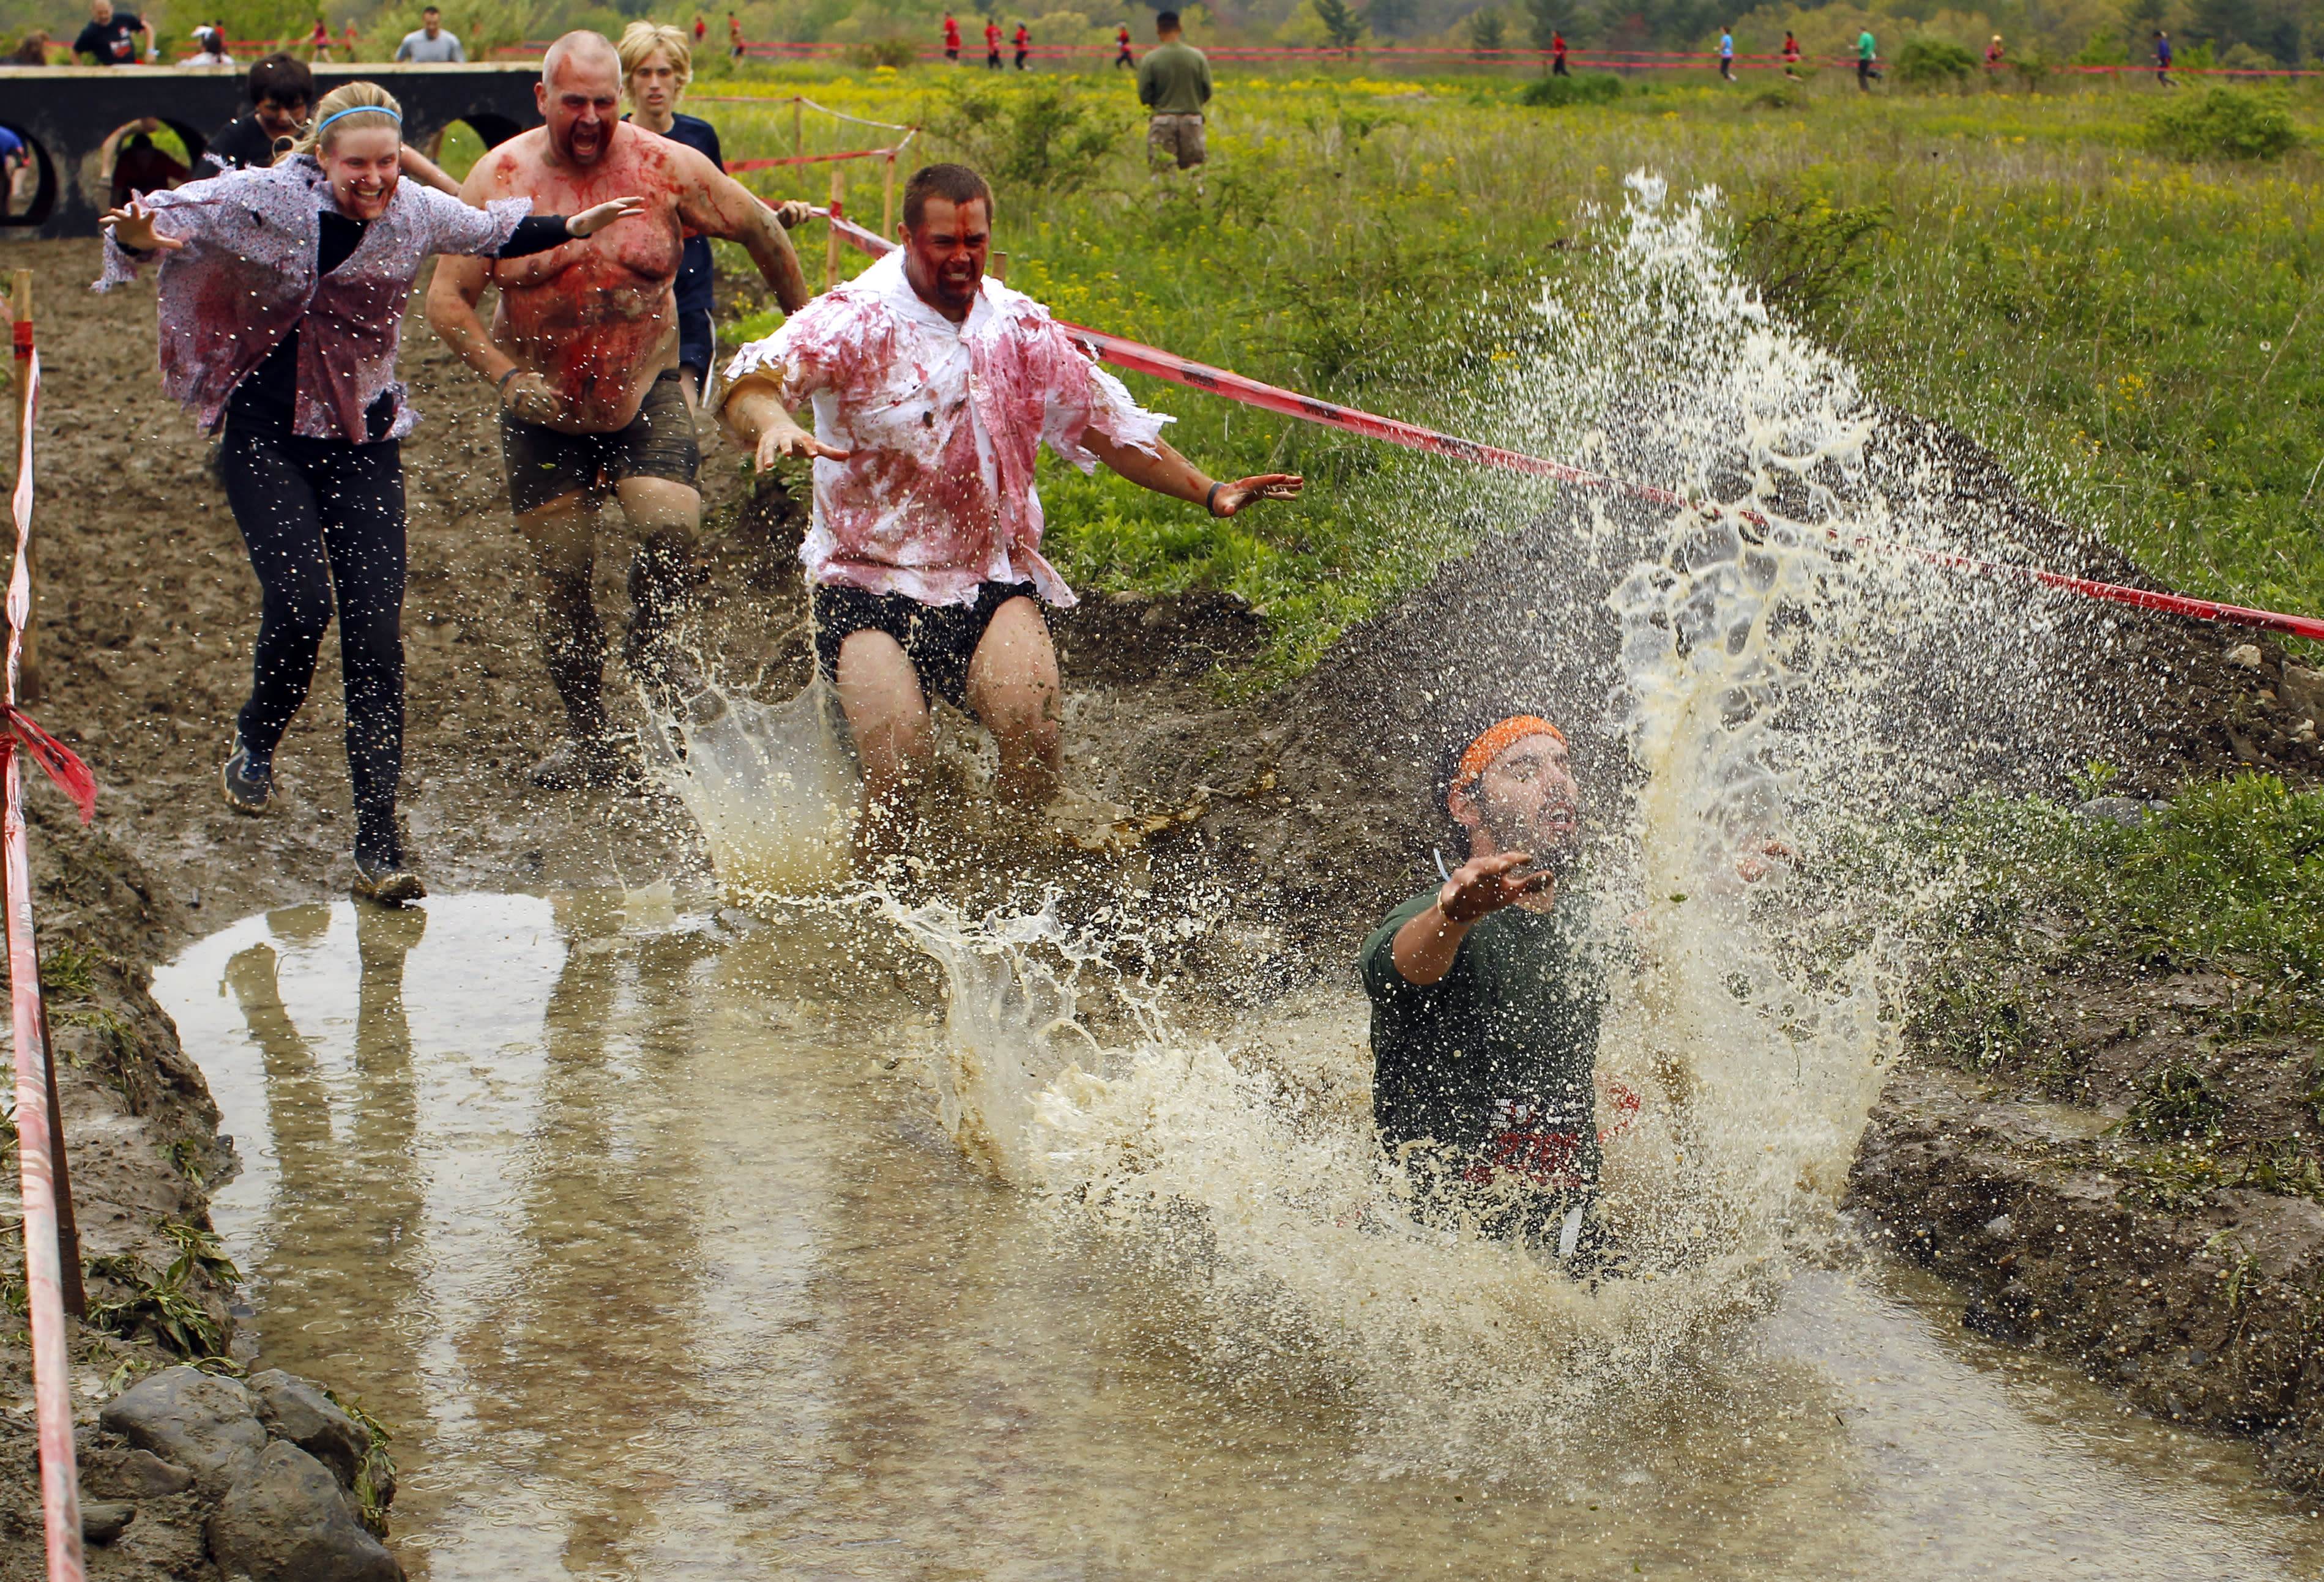 """Zombies chase a runner (R) into a pool of water on the """"Run for Your Lives"""" 5K obstacle course race in Amesbury, Massachusetts May 5, 2012. Runners face man-made and natural obstacles on the course, while being chased by zombies, who try to take """"health"""" flags off the runners belts. REUTERS/Brian Snyder"""